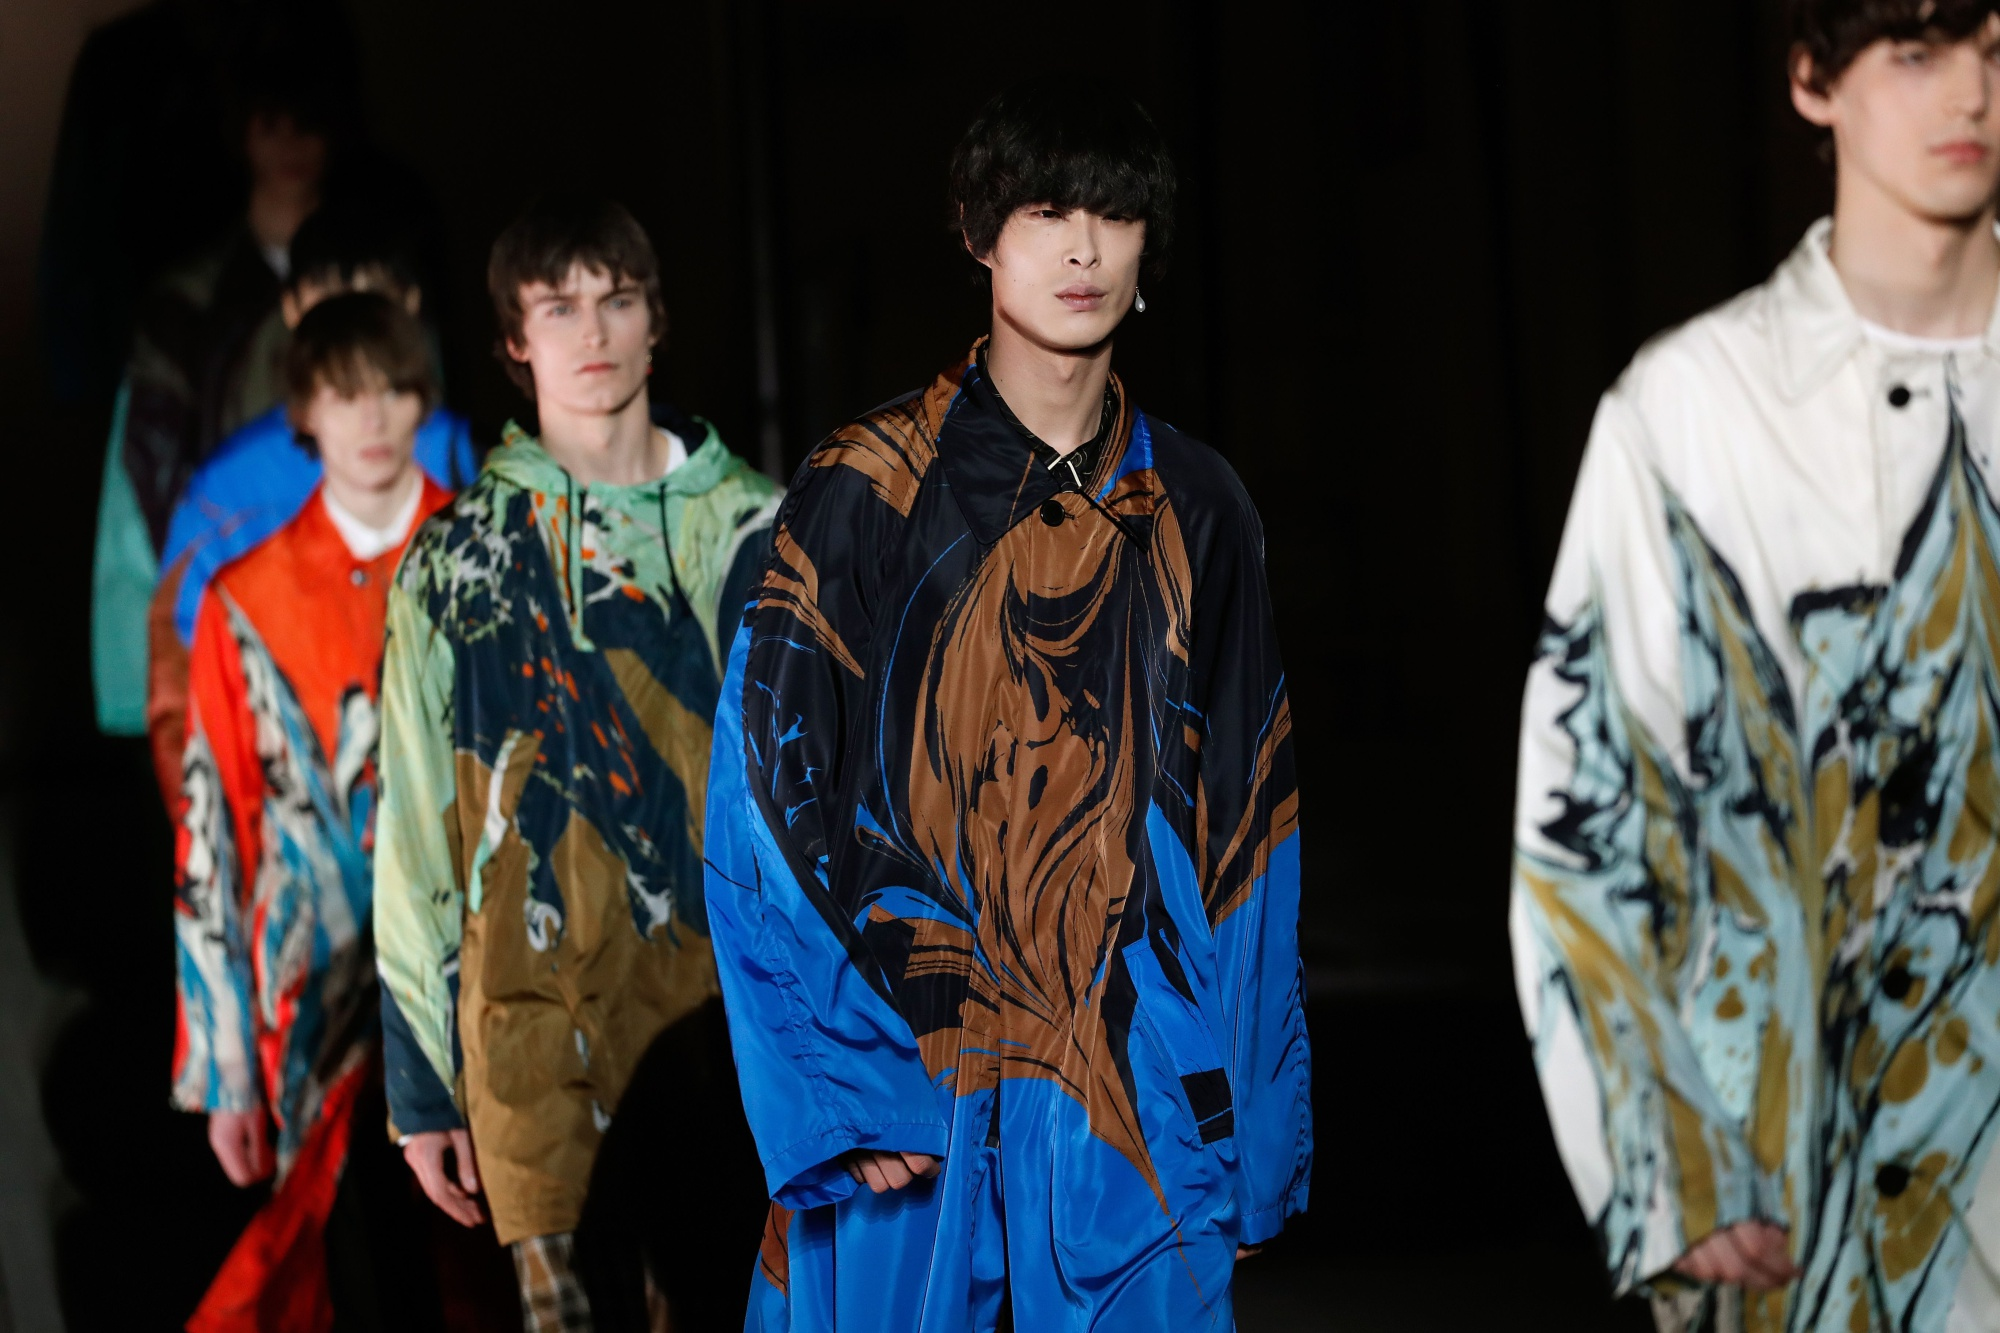 Models present creations by Dries Van Noten during the men's Fashion Week for the Fall/Winter 2018/2019 collection in Paris on January 18, 2018.